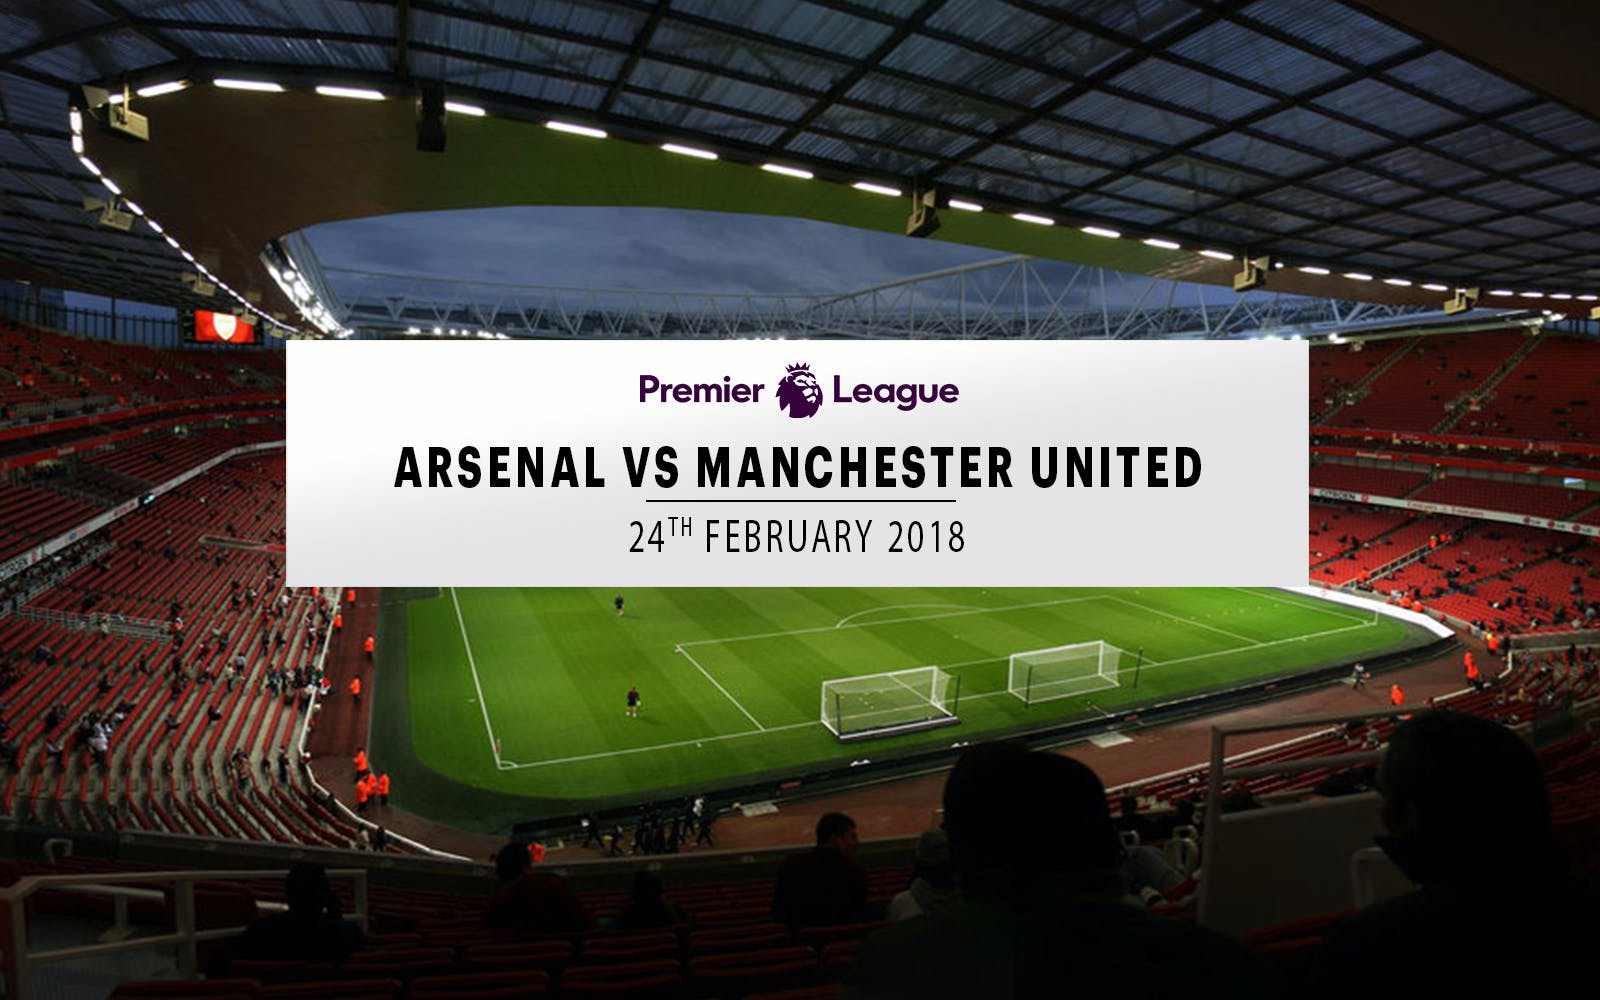 arsenal vs manchester united - 24th february 2018-1